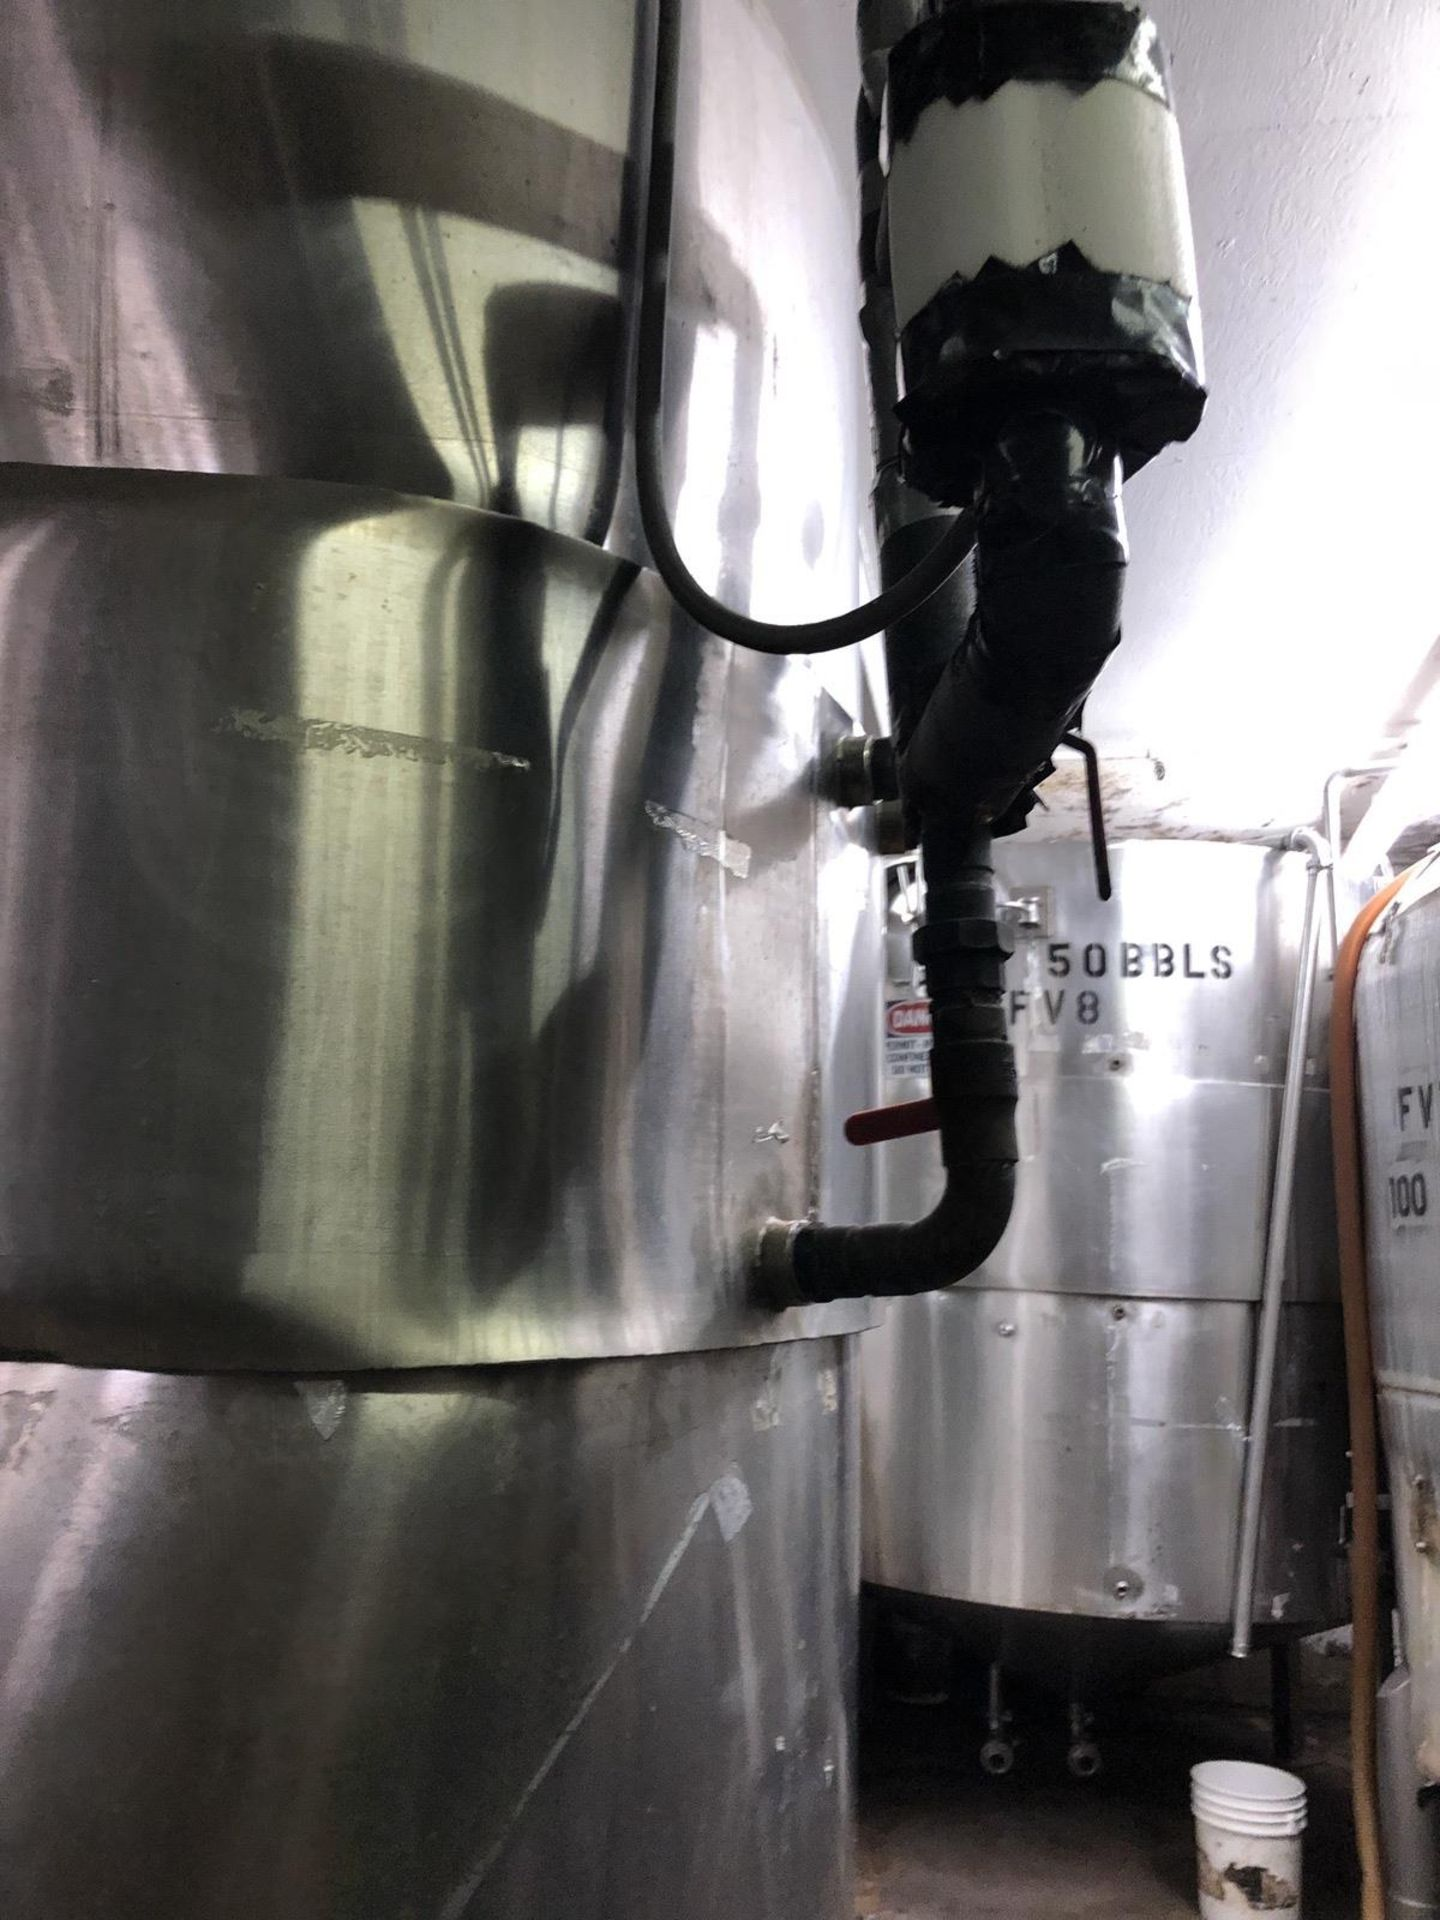 Lot 27 - 50 BBL Stainless Steel Tank, Damaged Jacket, Approx Dims: 7ft OD x 125in OAH | Rig Fee: $500